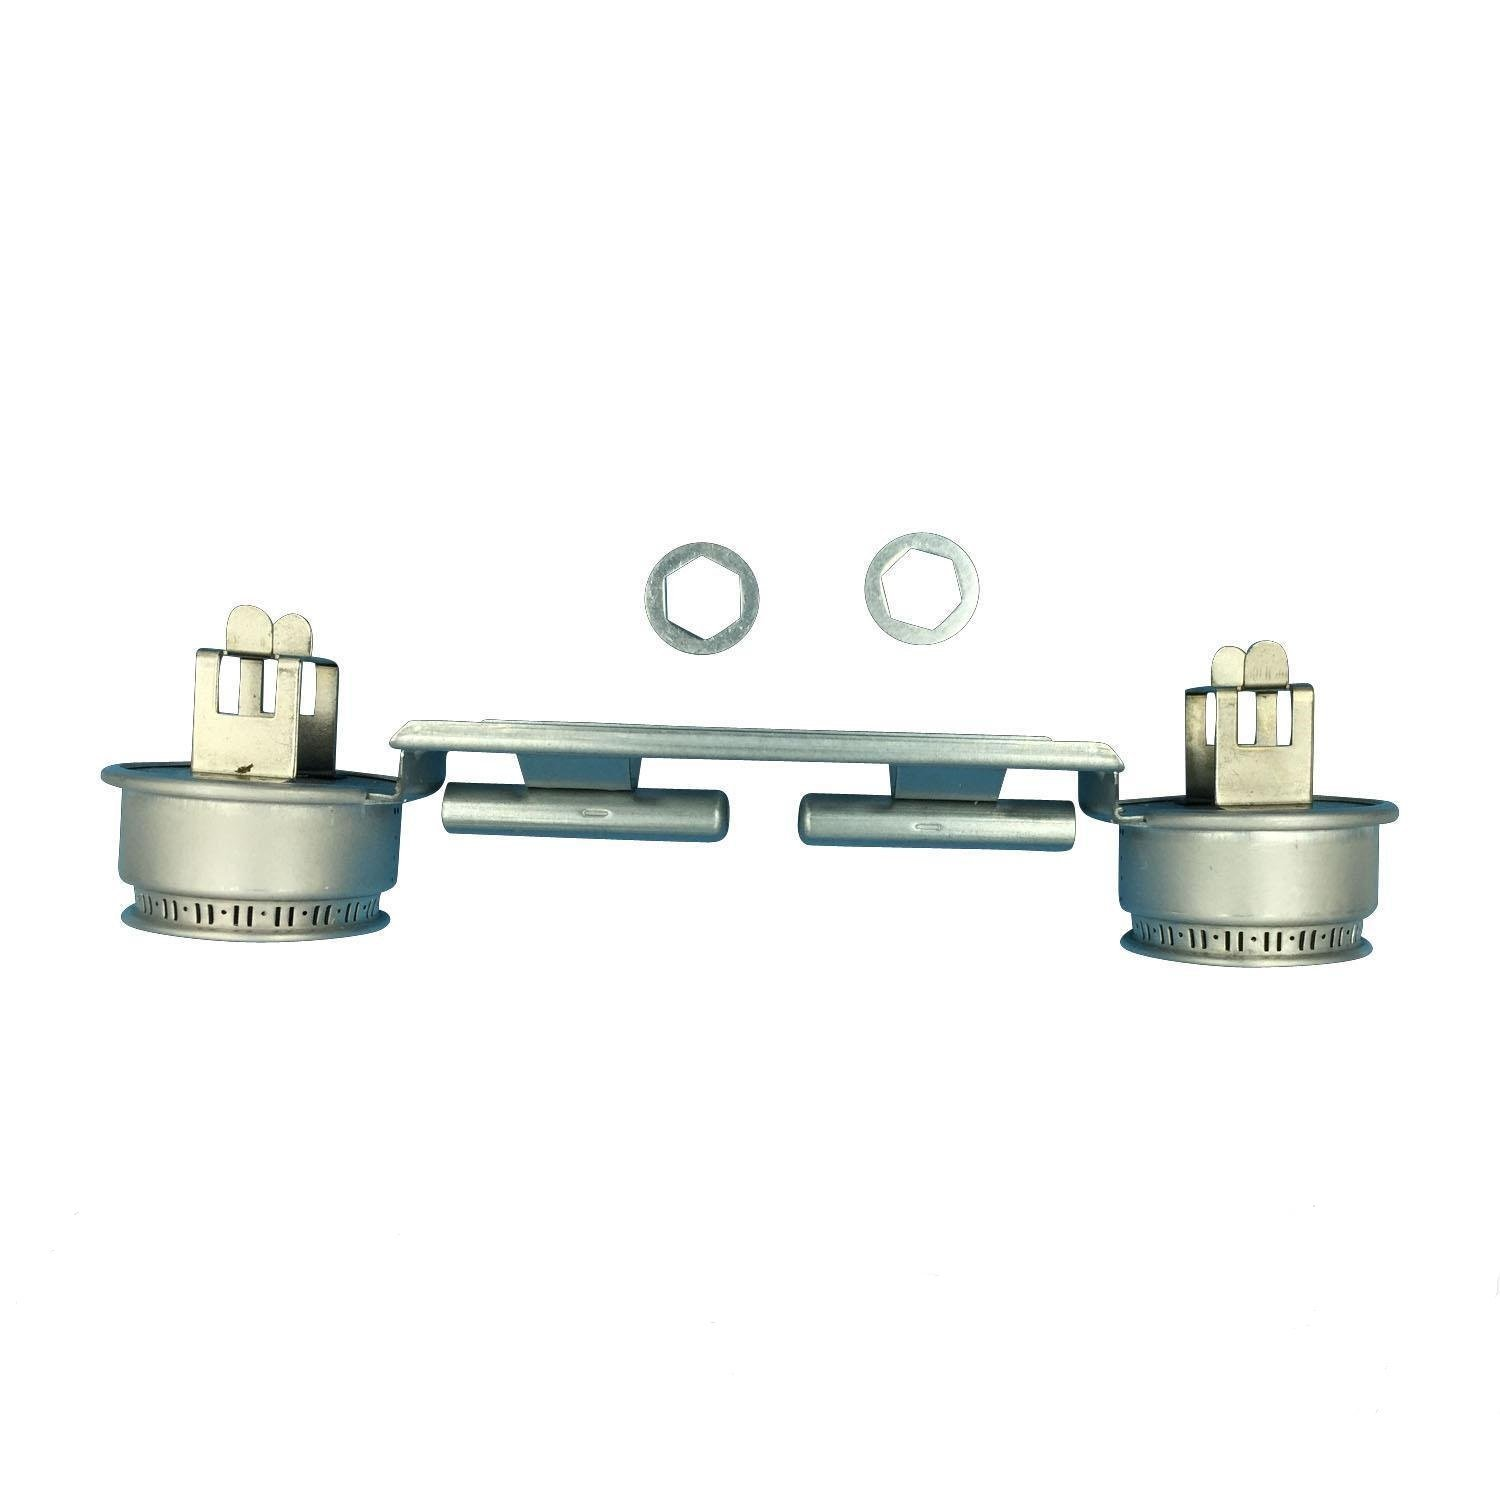 GE WB16K10026 Double Burner Assembly